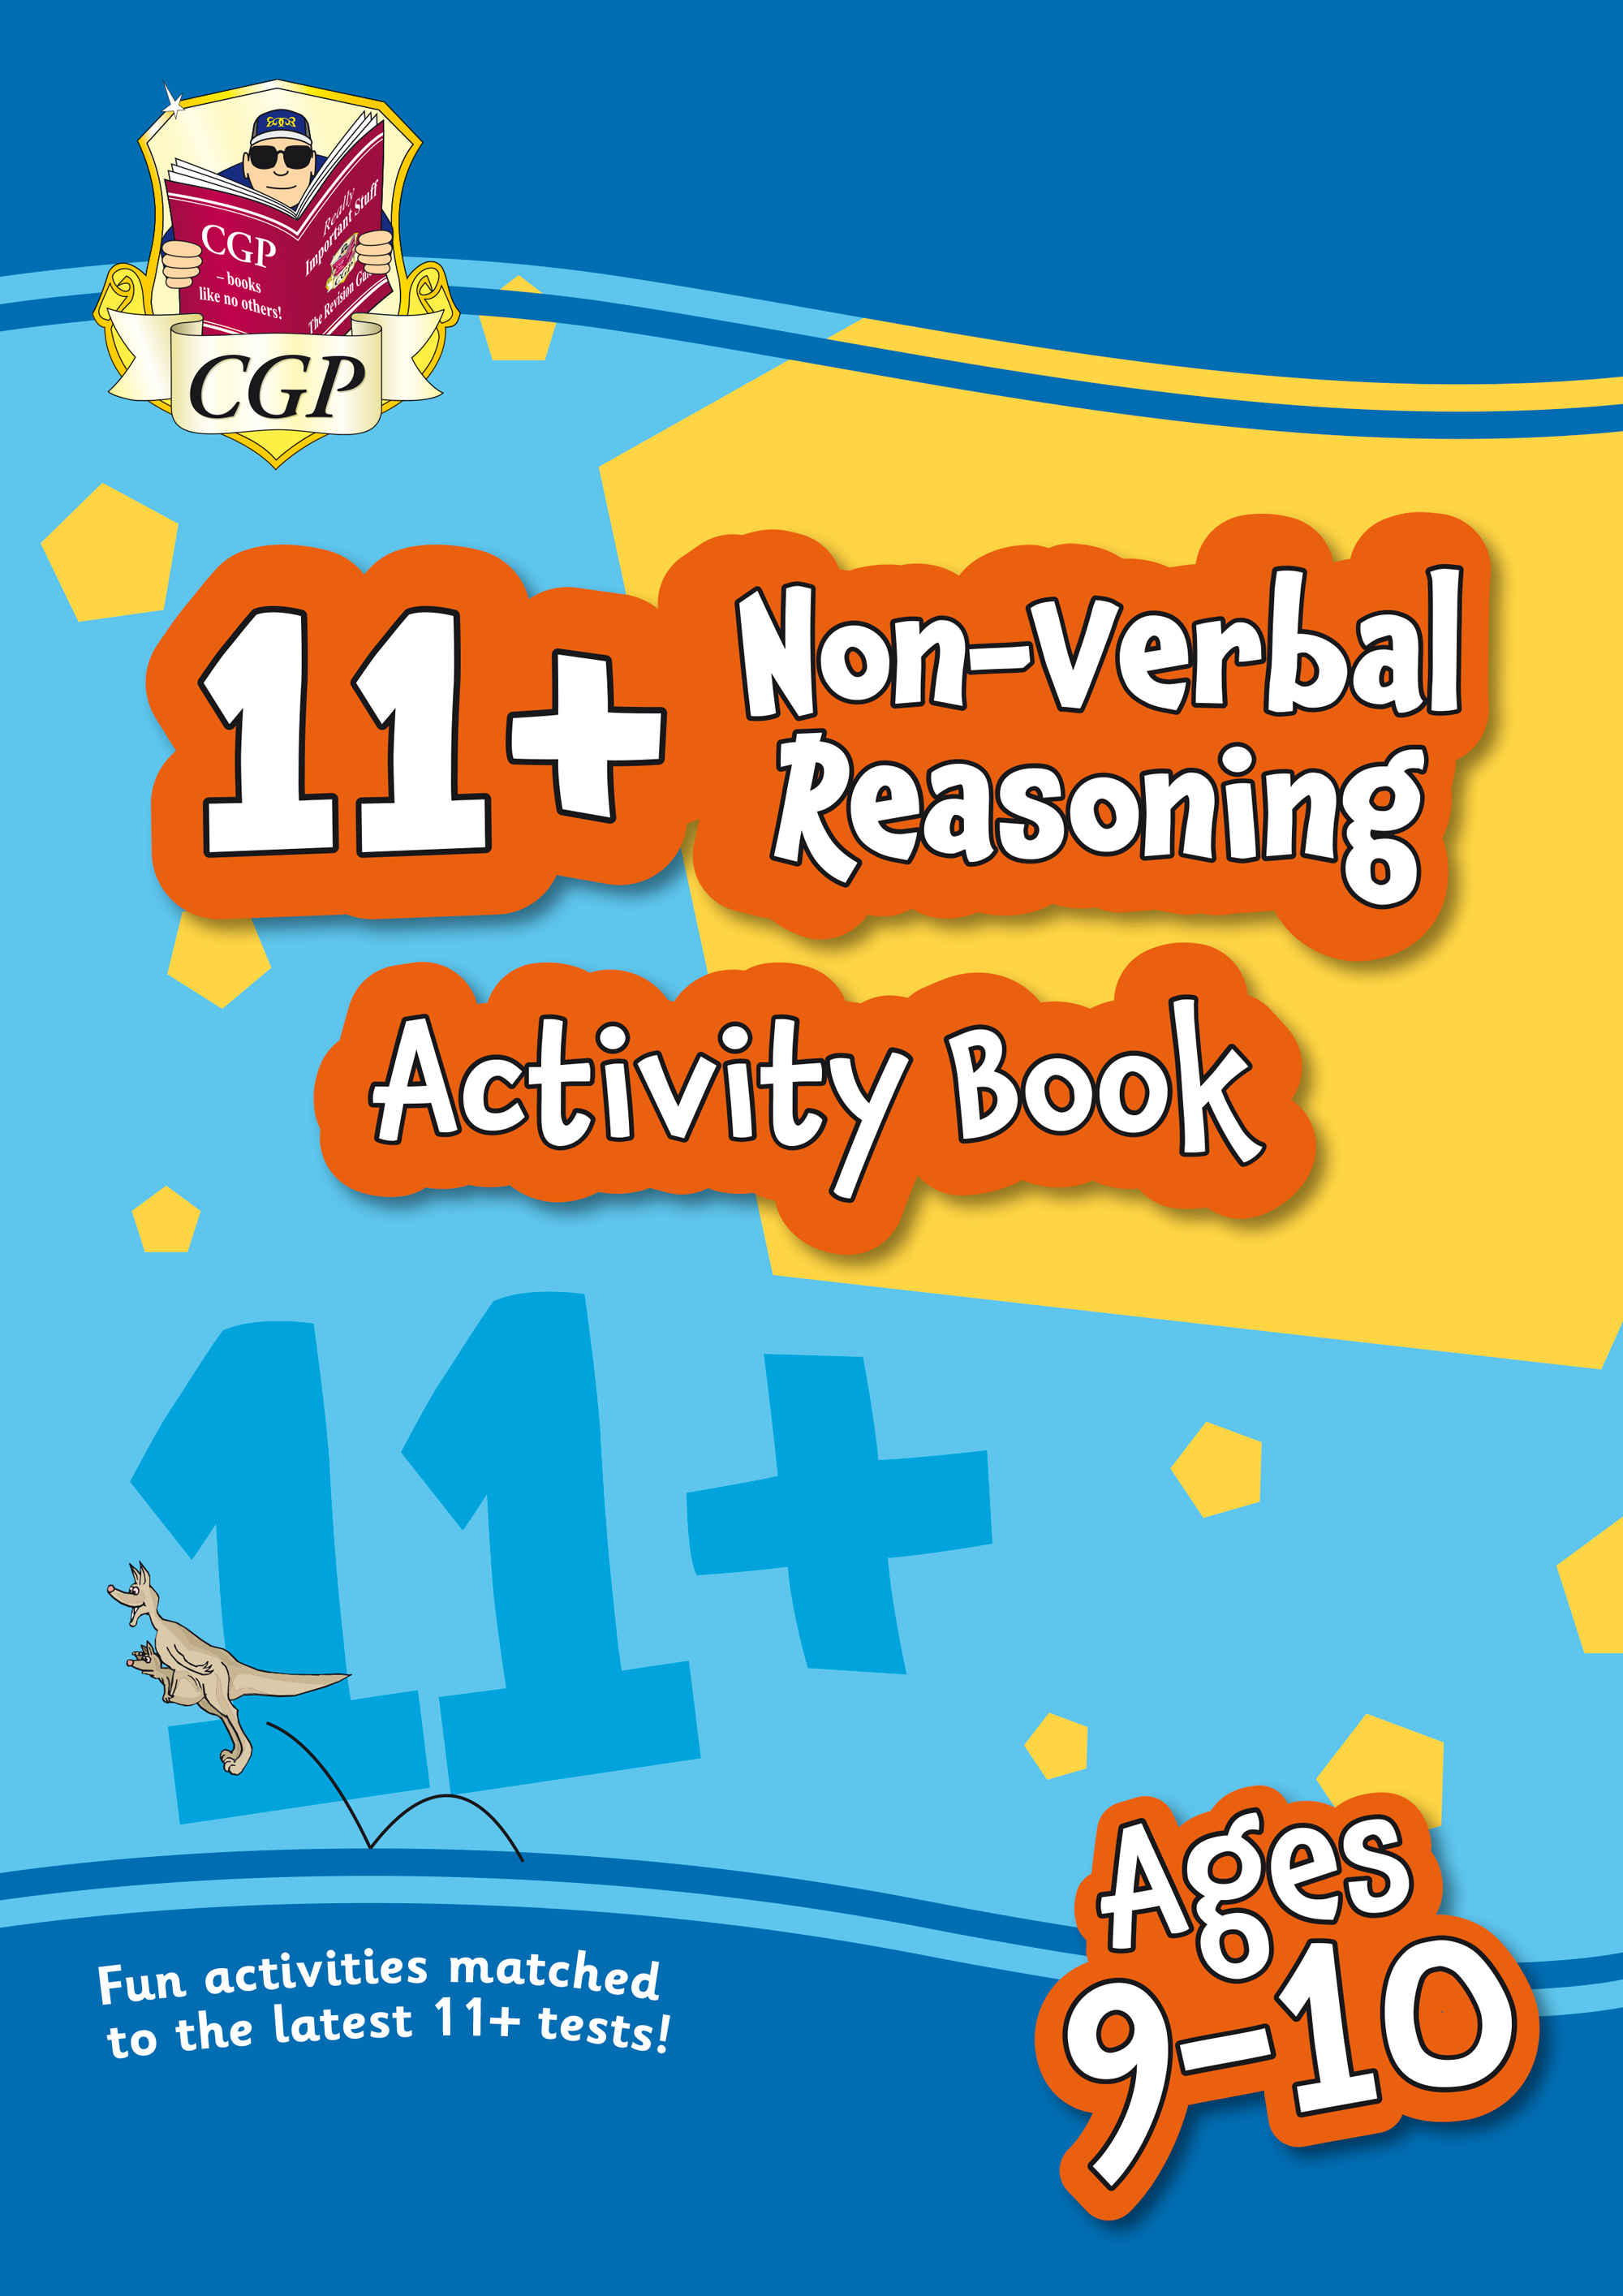 NF5QE1 - New 11+ Activity Book: Non-Verbal Reasoning - Ages 9-10